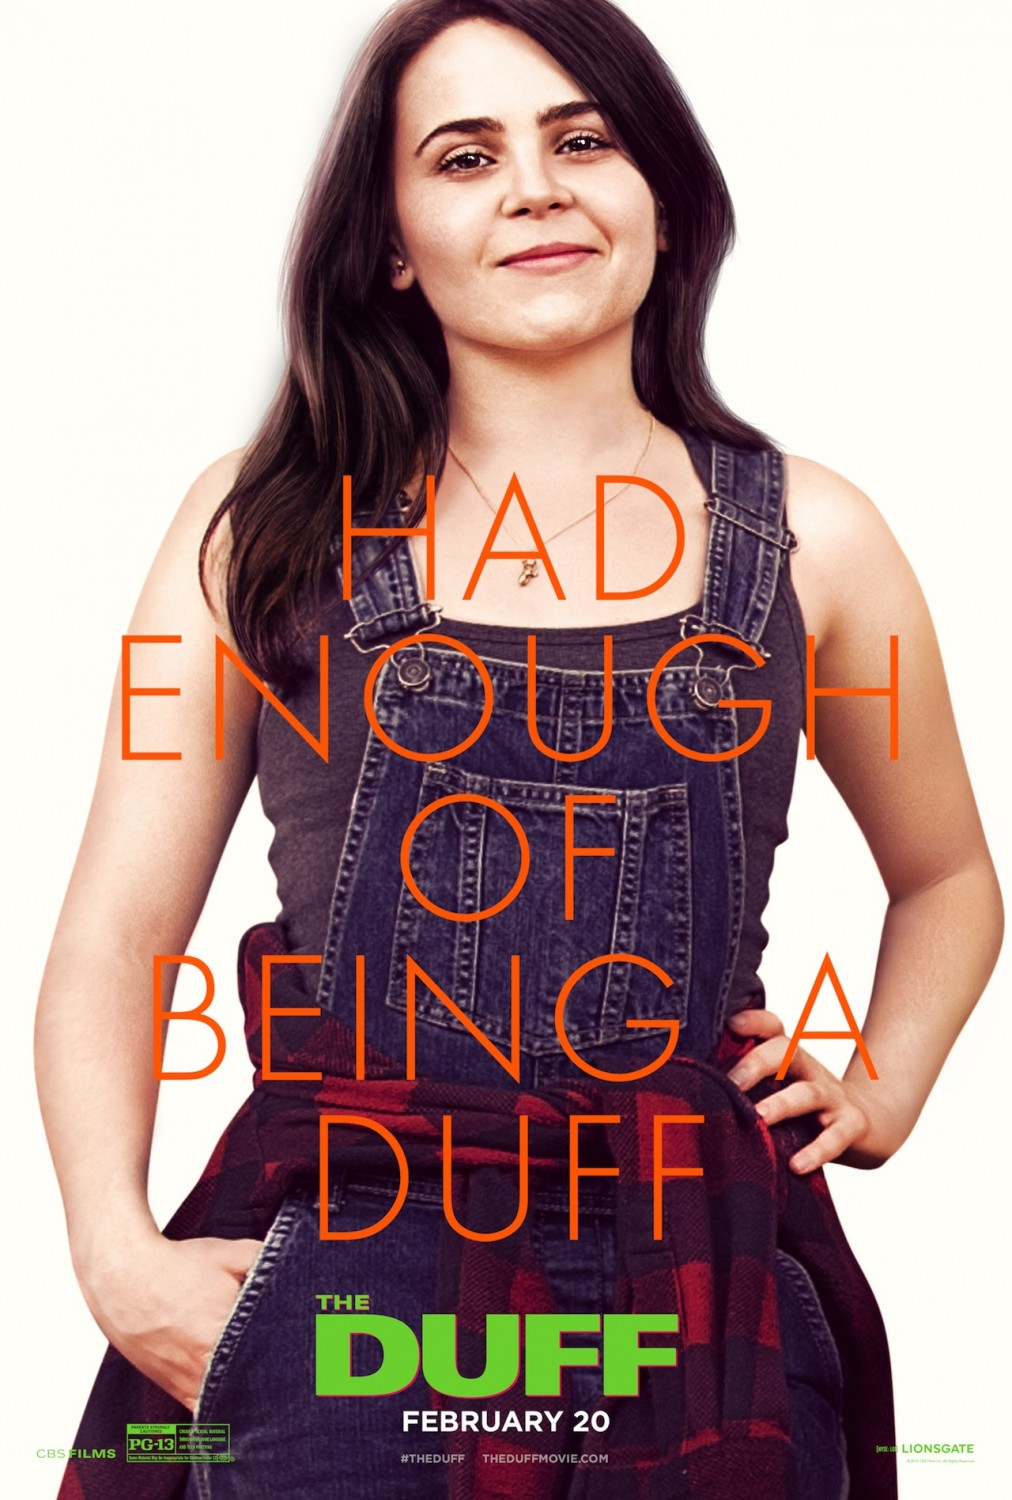 The DUFF-POSTER CHAR-16JANEIRO2014-03